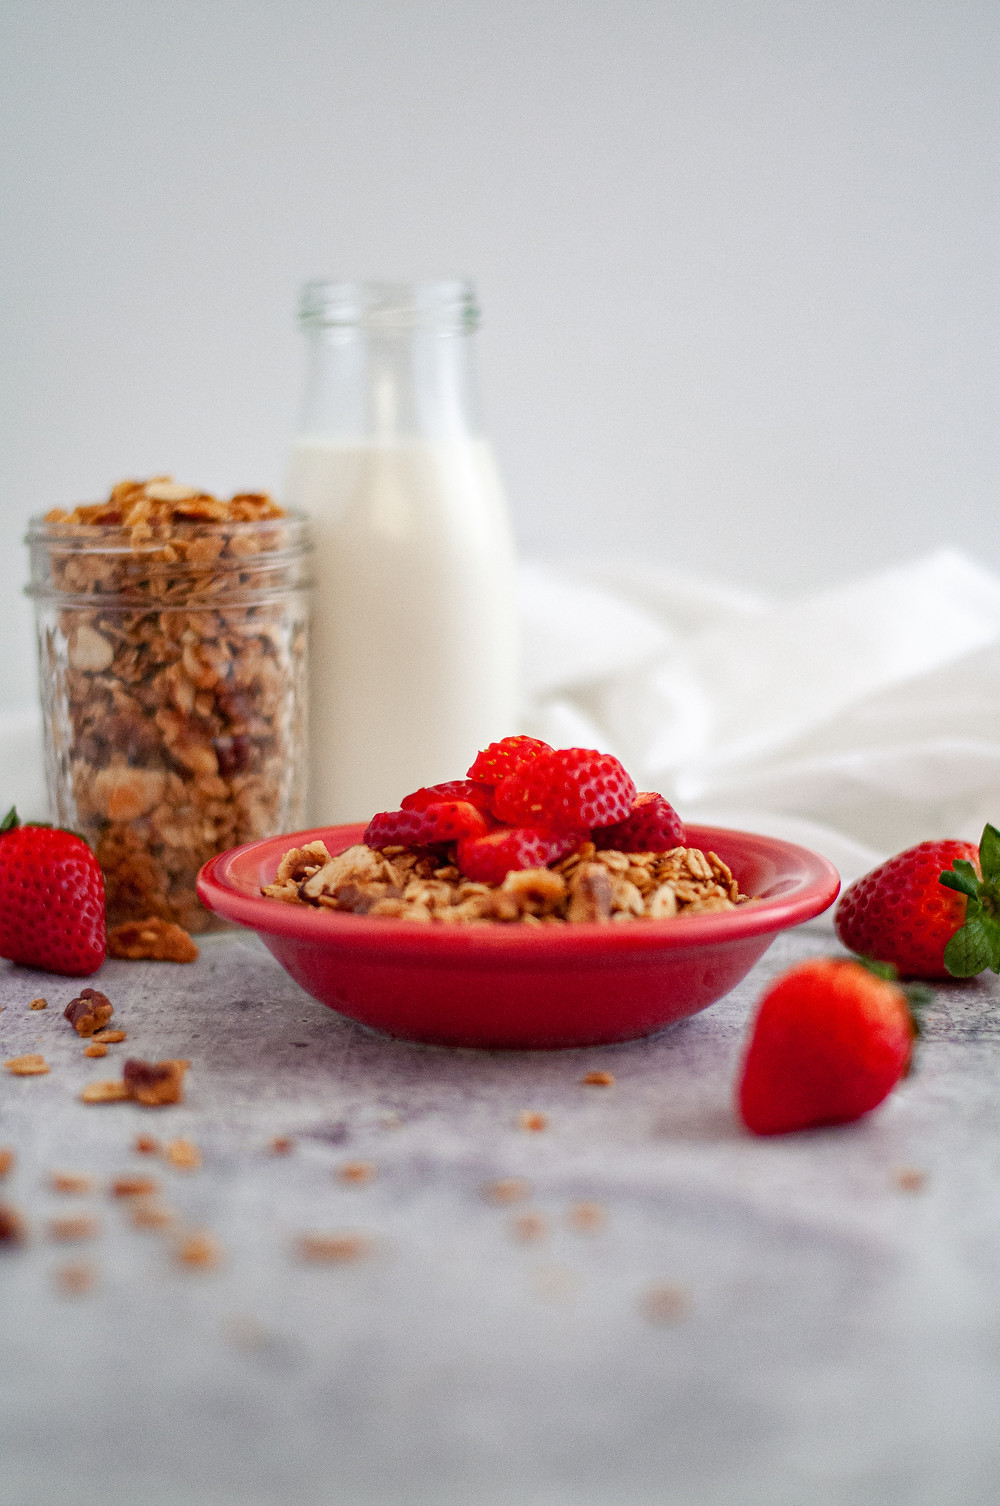 Small red bowl of granola topped with slices of strawberries. This homemade granola is surrounded by strawberries, granola in a small glass jar as well as scattered around, and a glass jar of milk